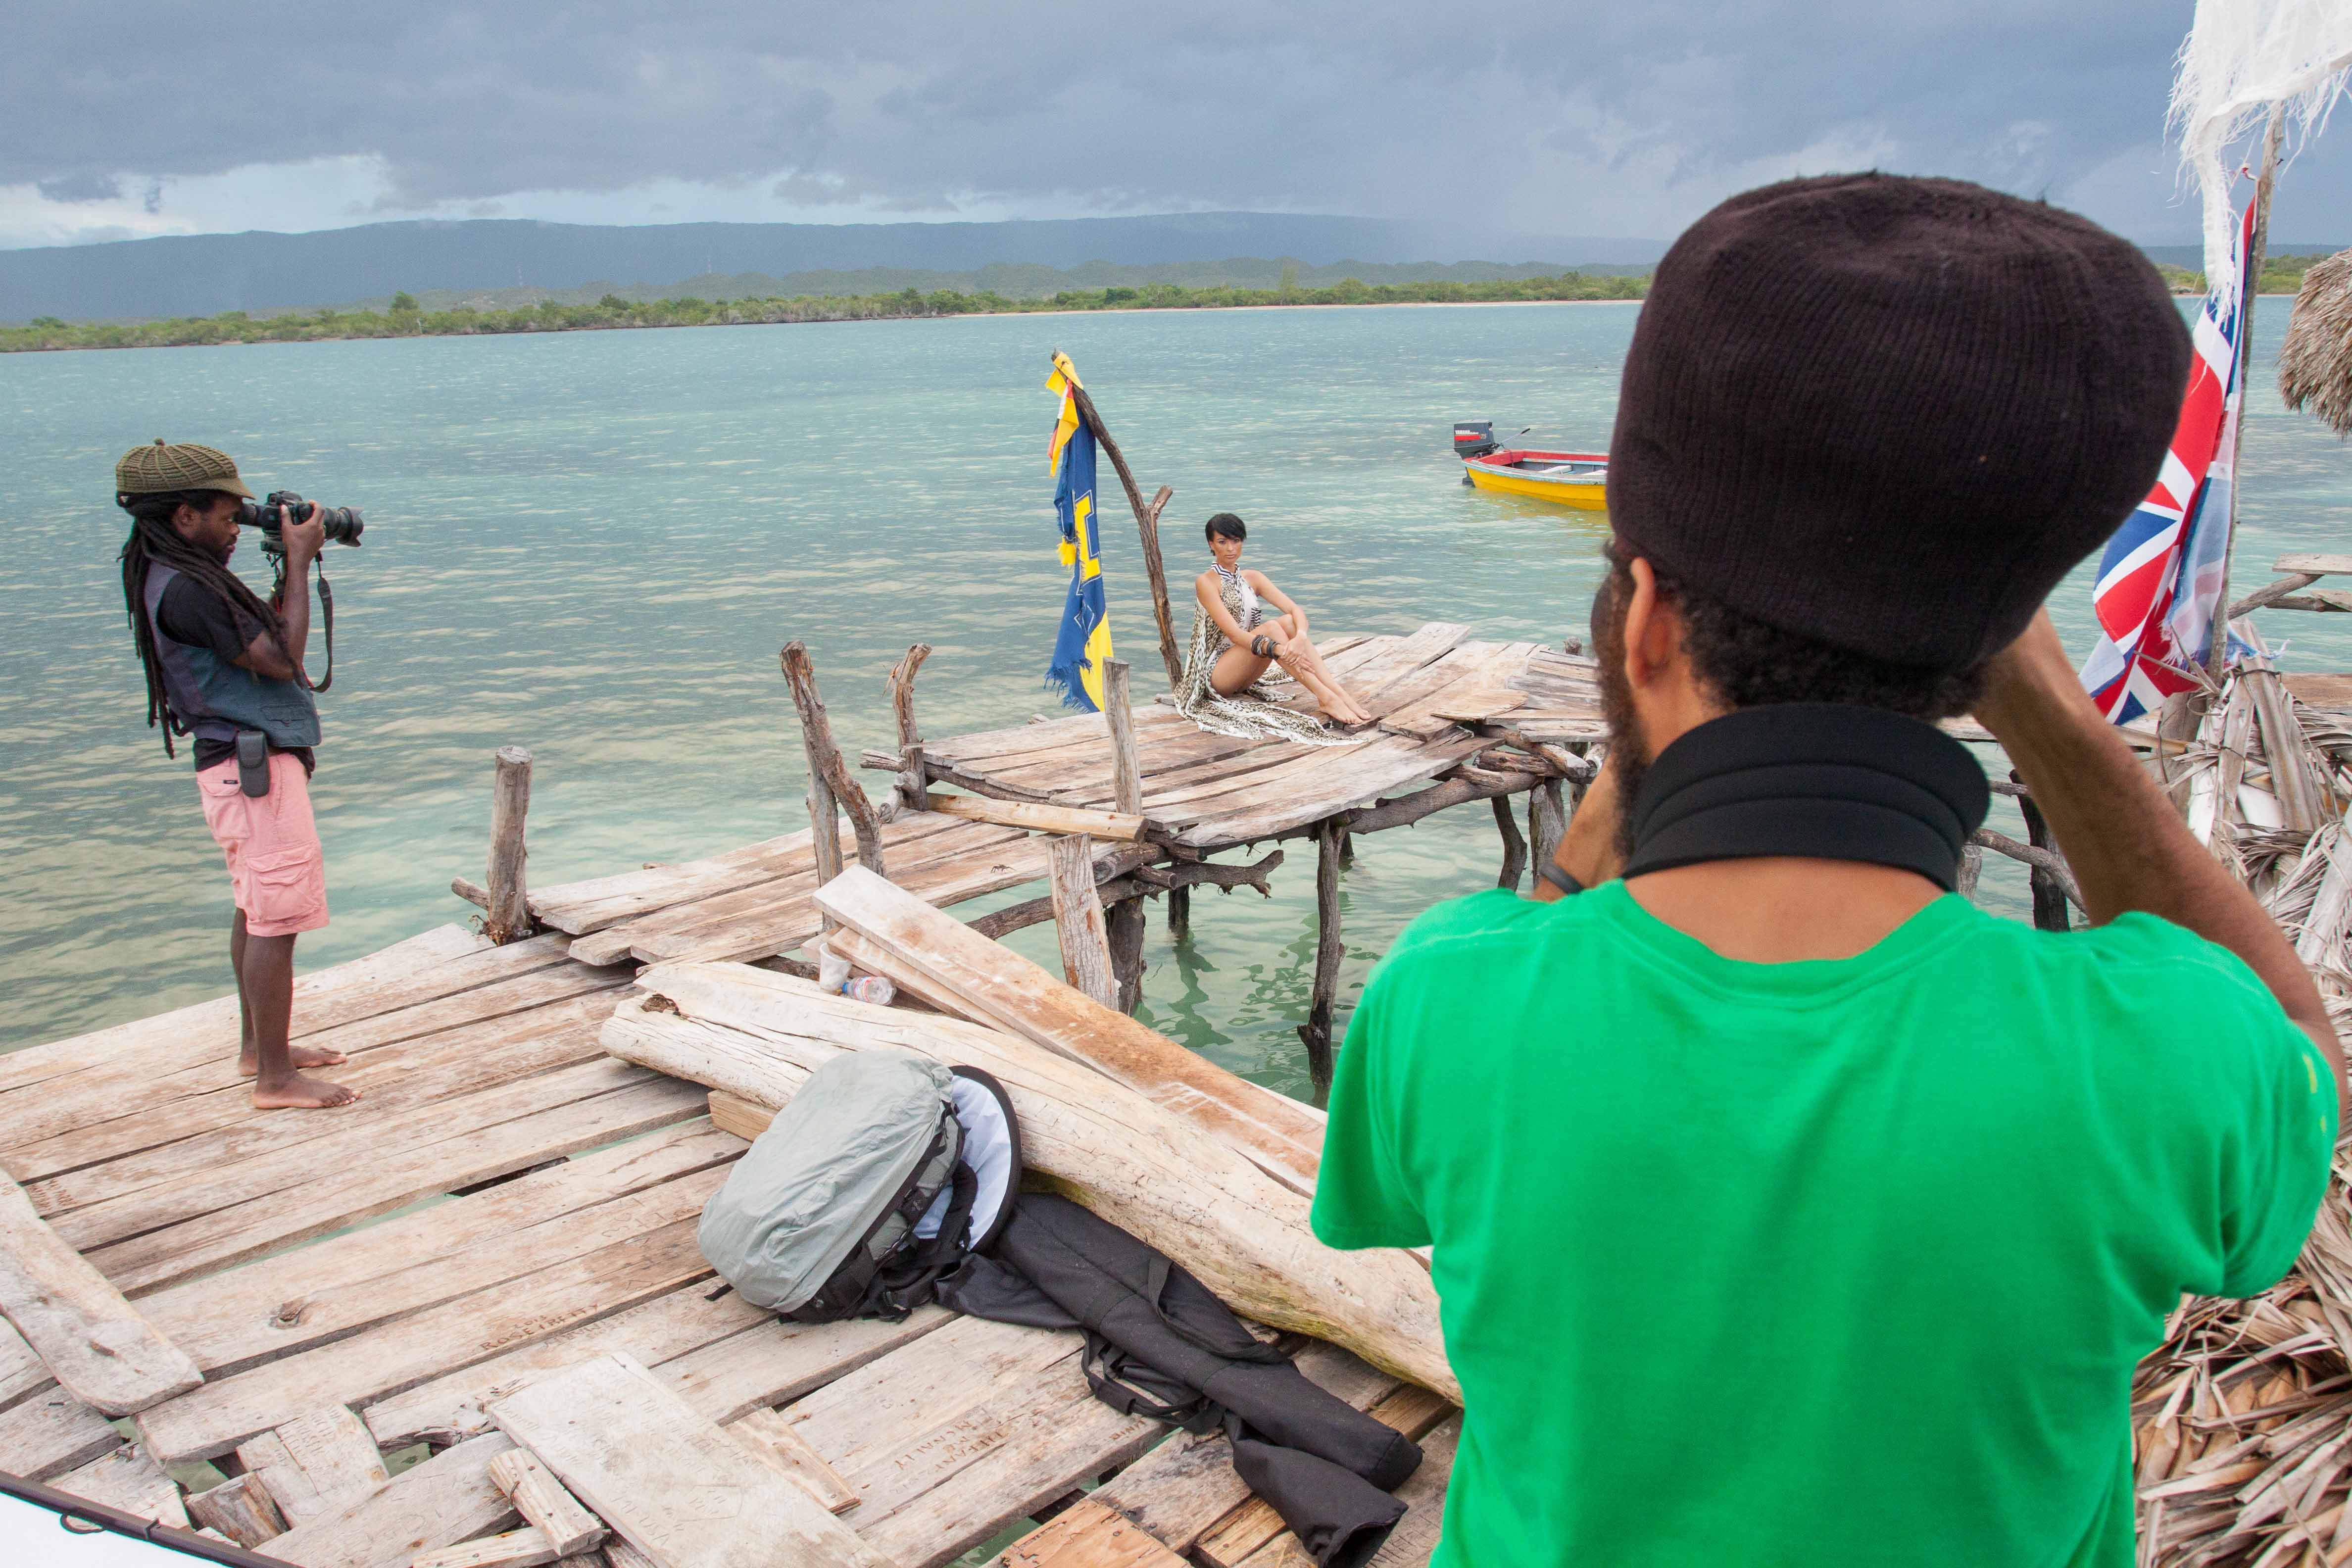 Behind the scenes of the Kaj Resort 13/14 fashion shoot on location at Pelican Bar on Treasure Beach, Jamaica. Photo courtesy Mark Gellineau.